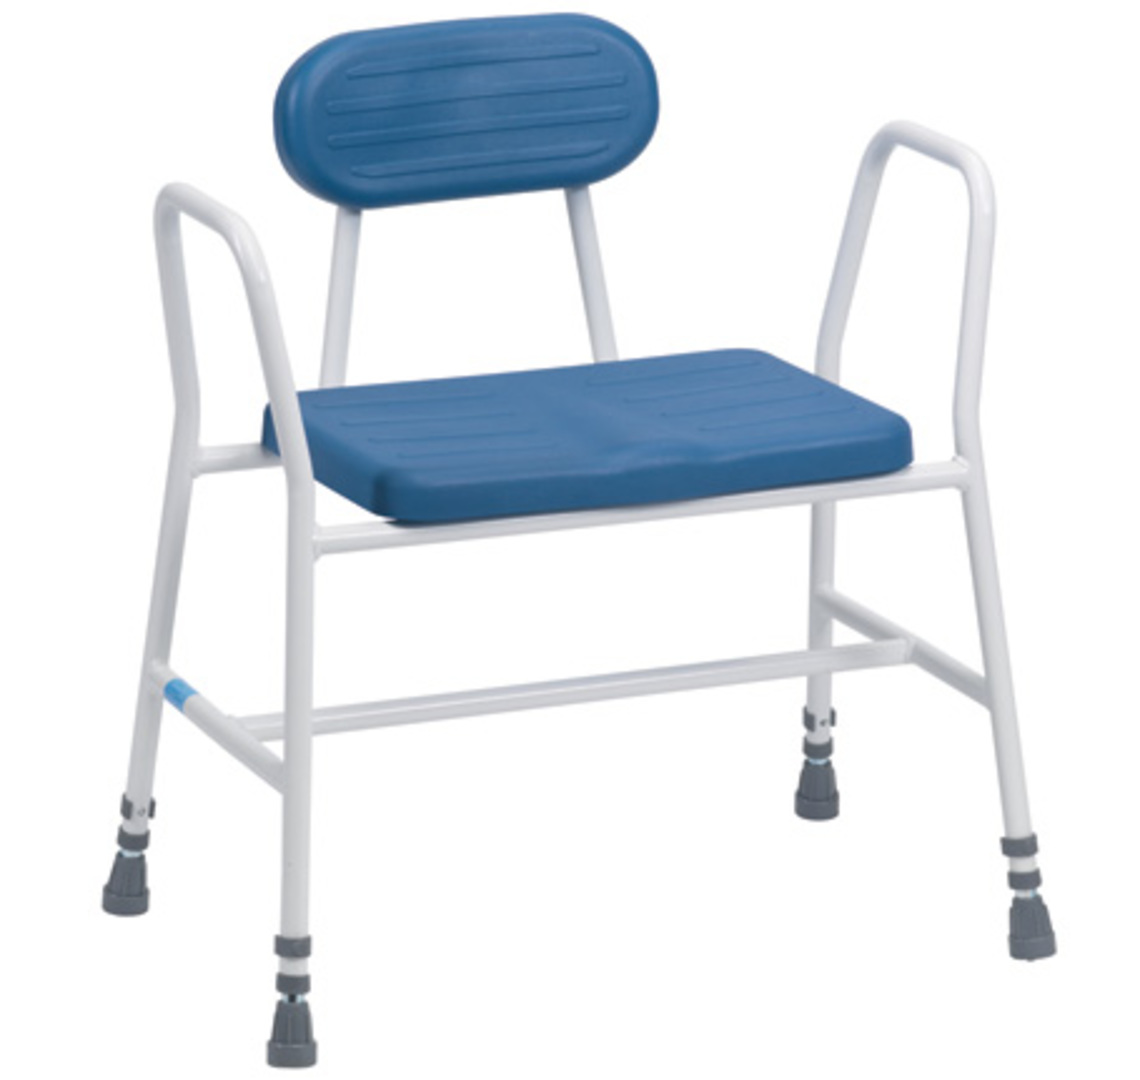 Deluxe Bariatric Perching Stool - Mobility Aids Uk